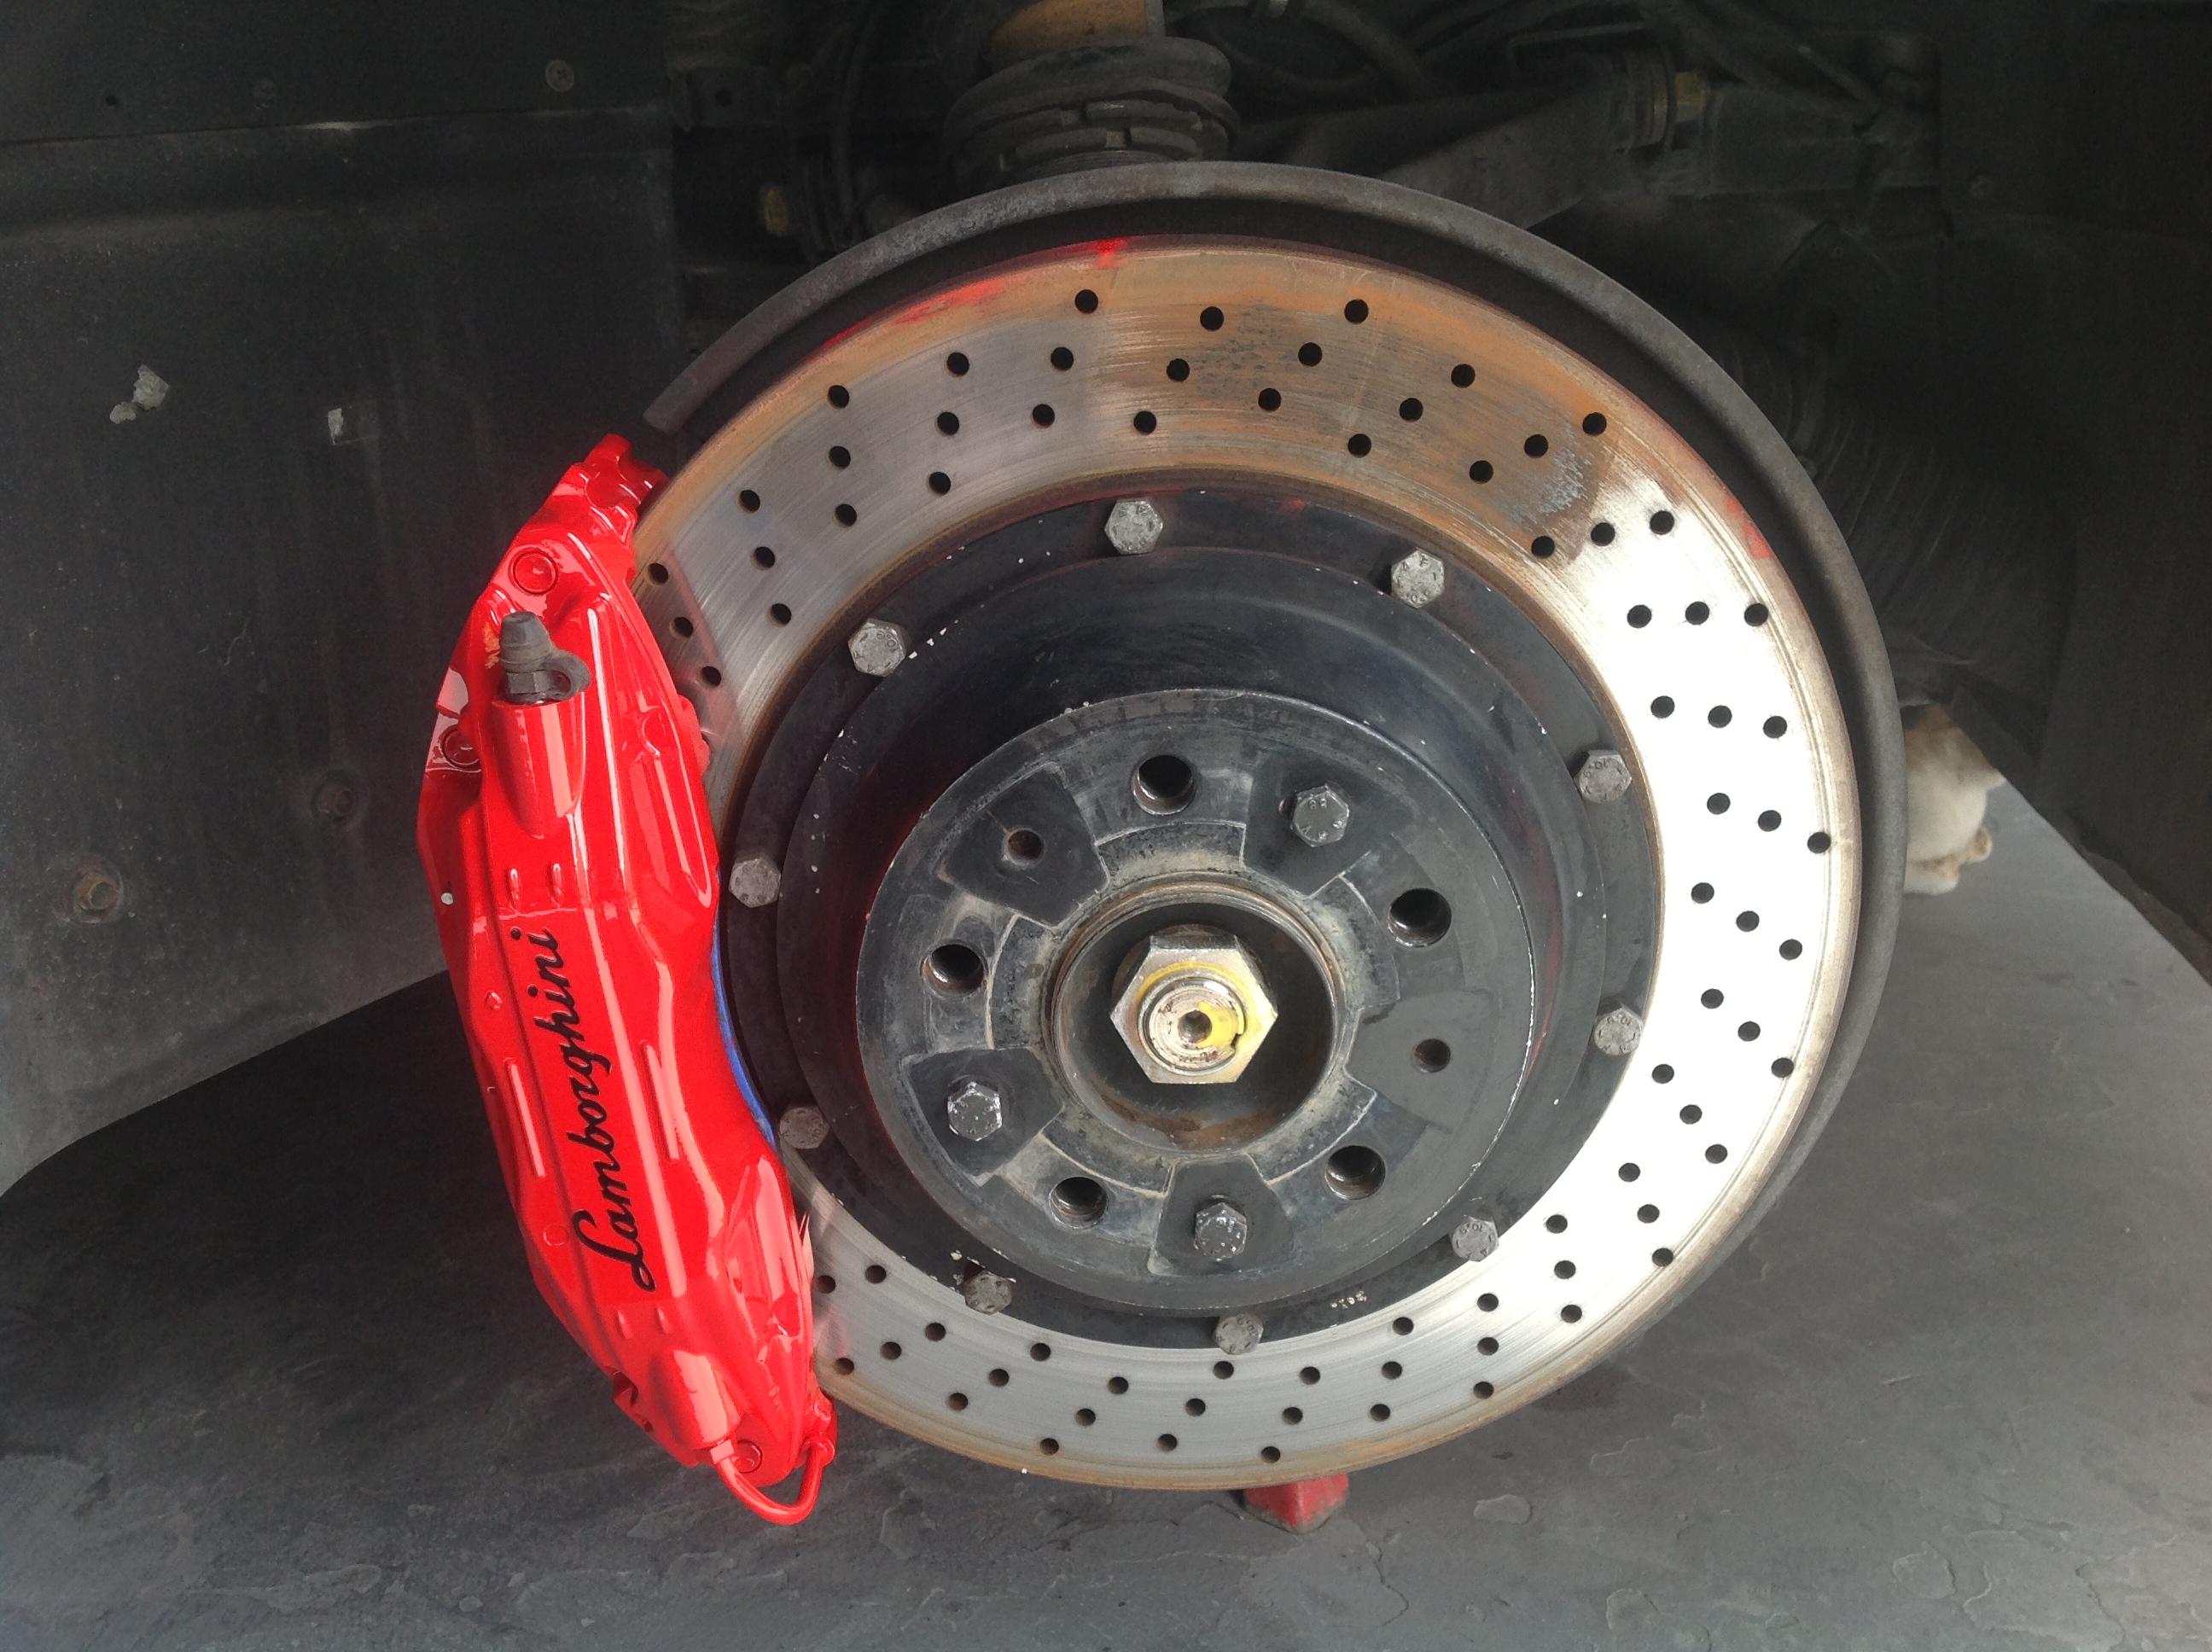 murcielago red brake caliper after